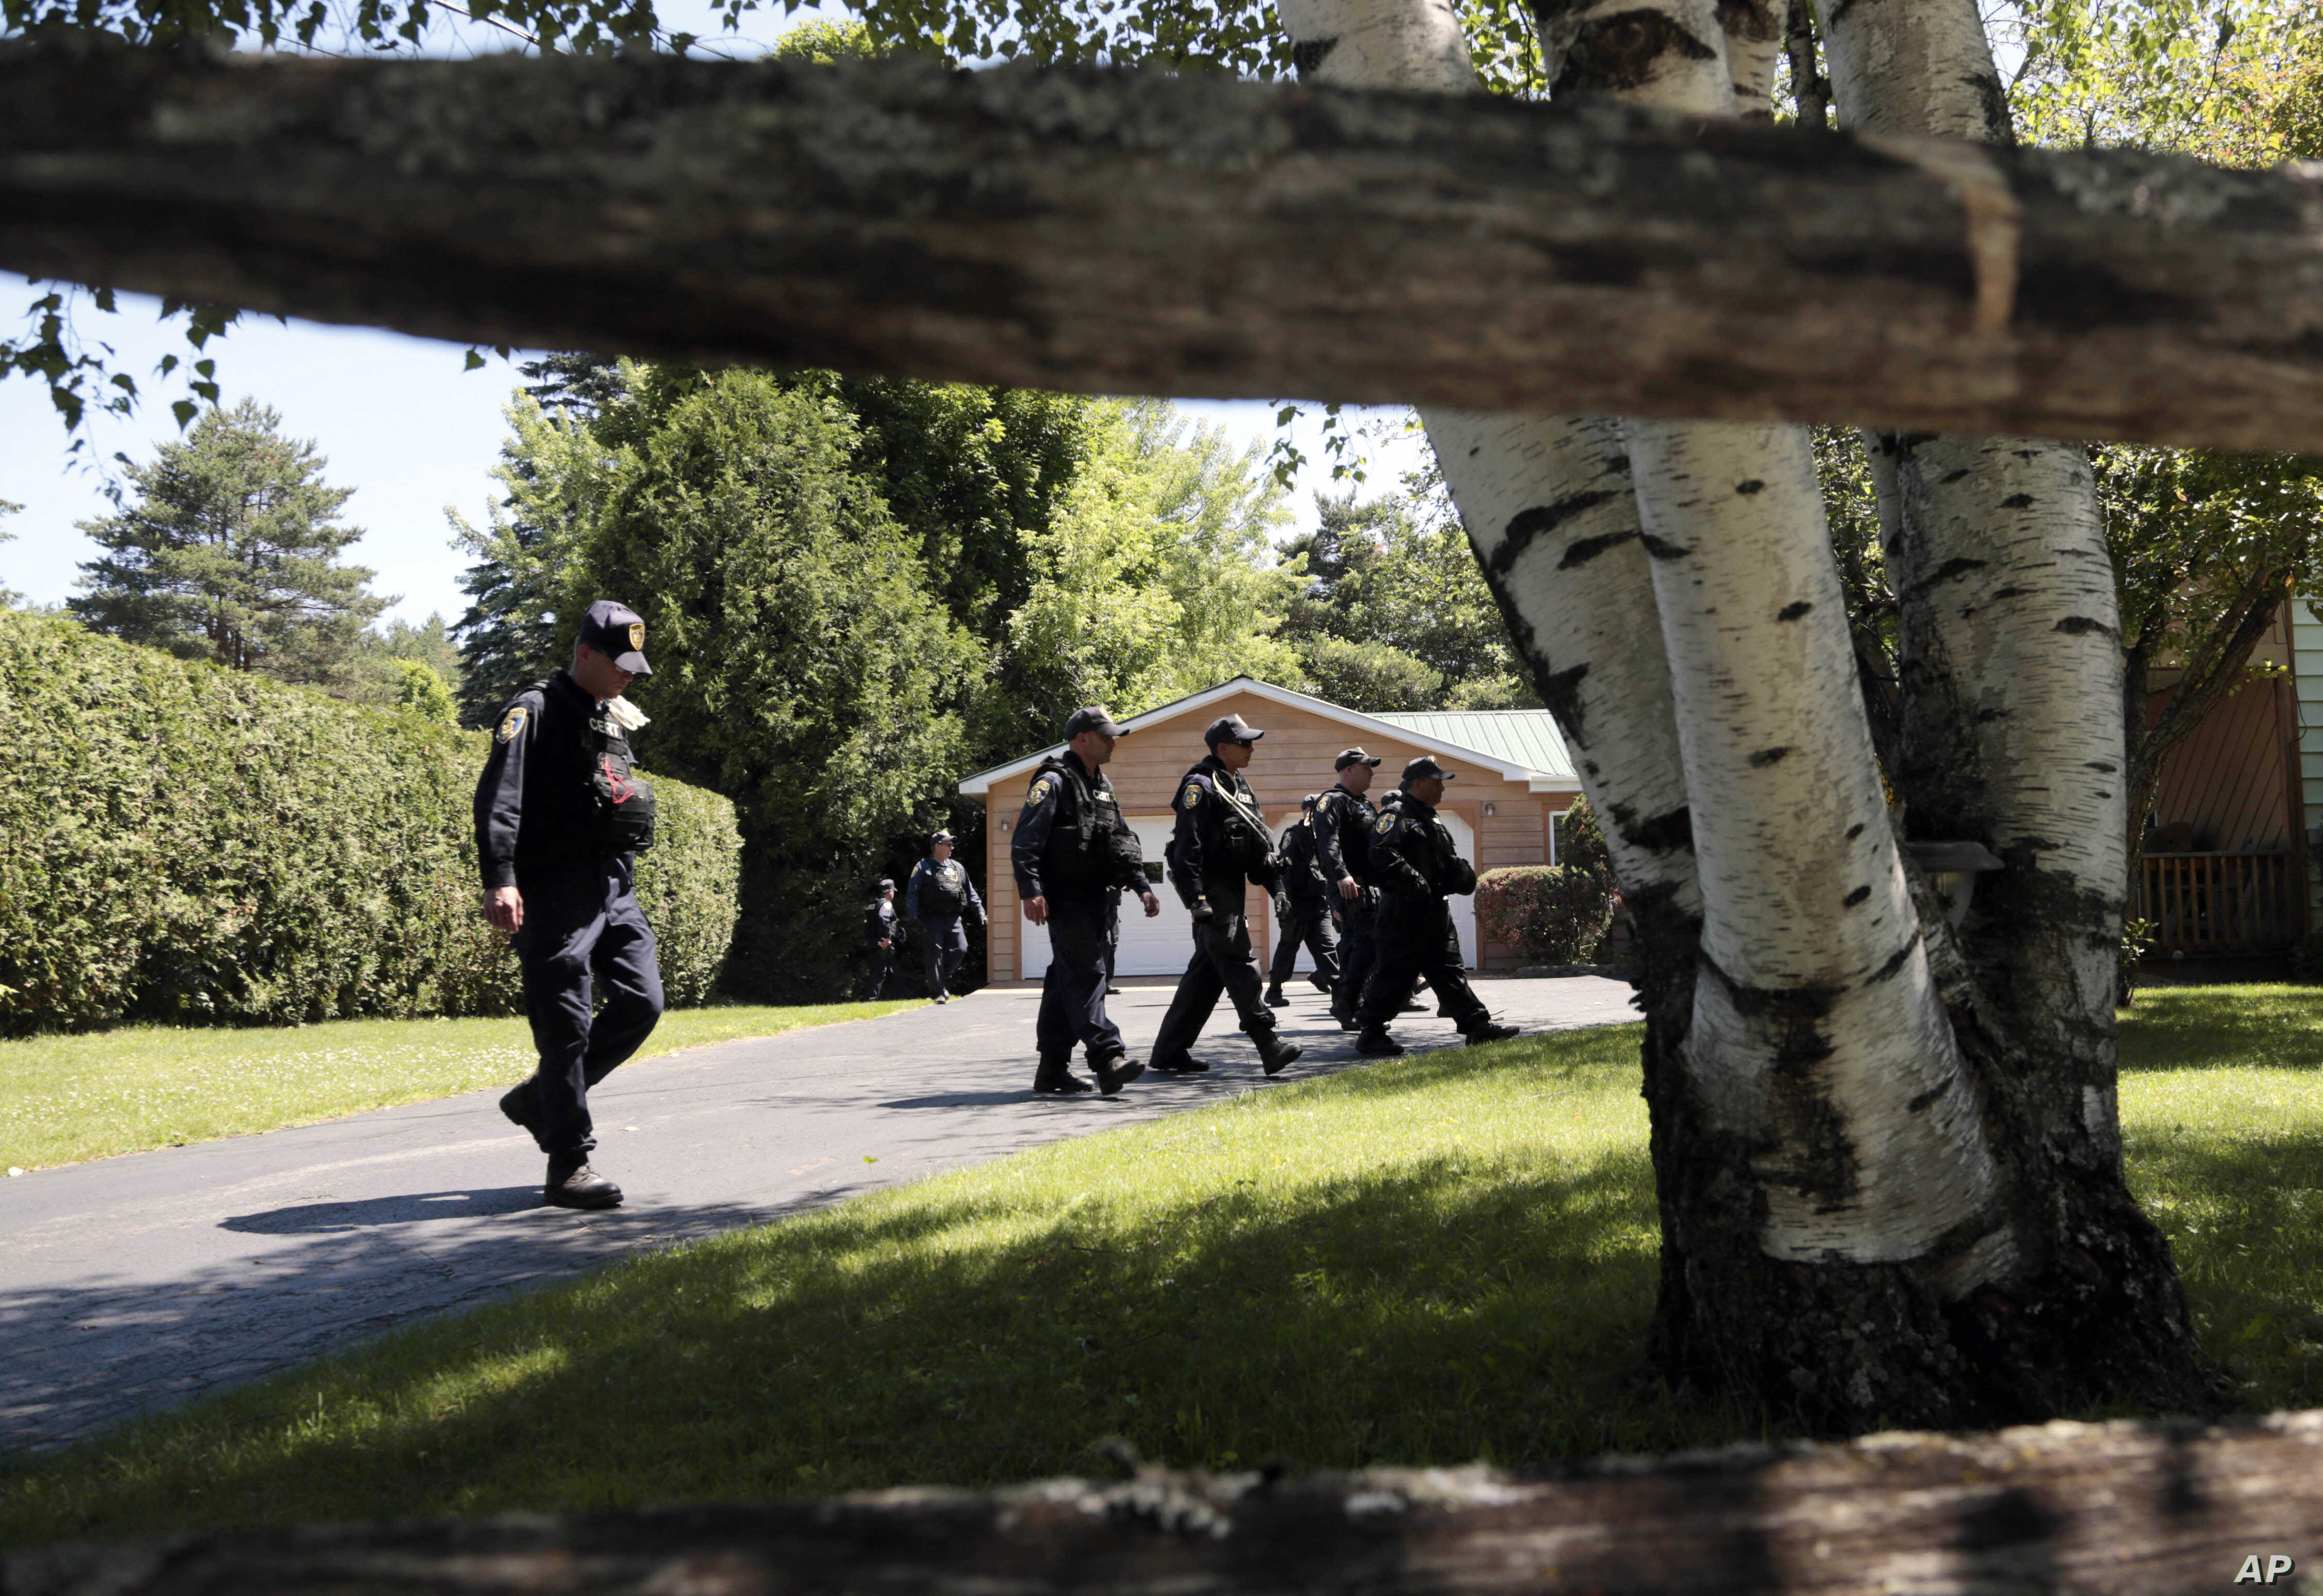 Corrections officers walk through a residential area in Malone, N.Y., during a search for two escaped prisoners from the Clinton Correctional Facility, June 24, 2015,